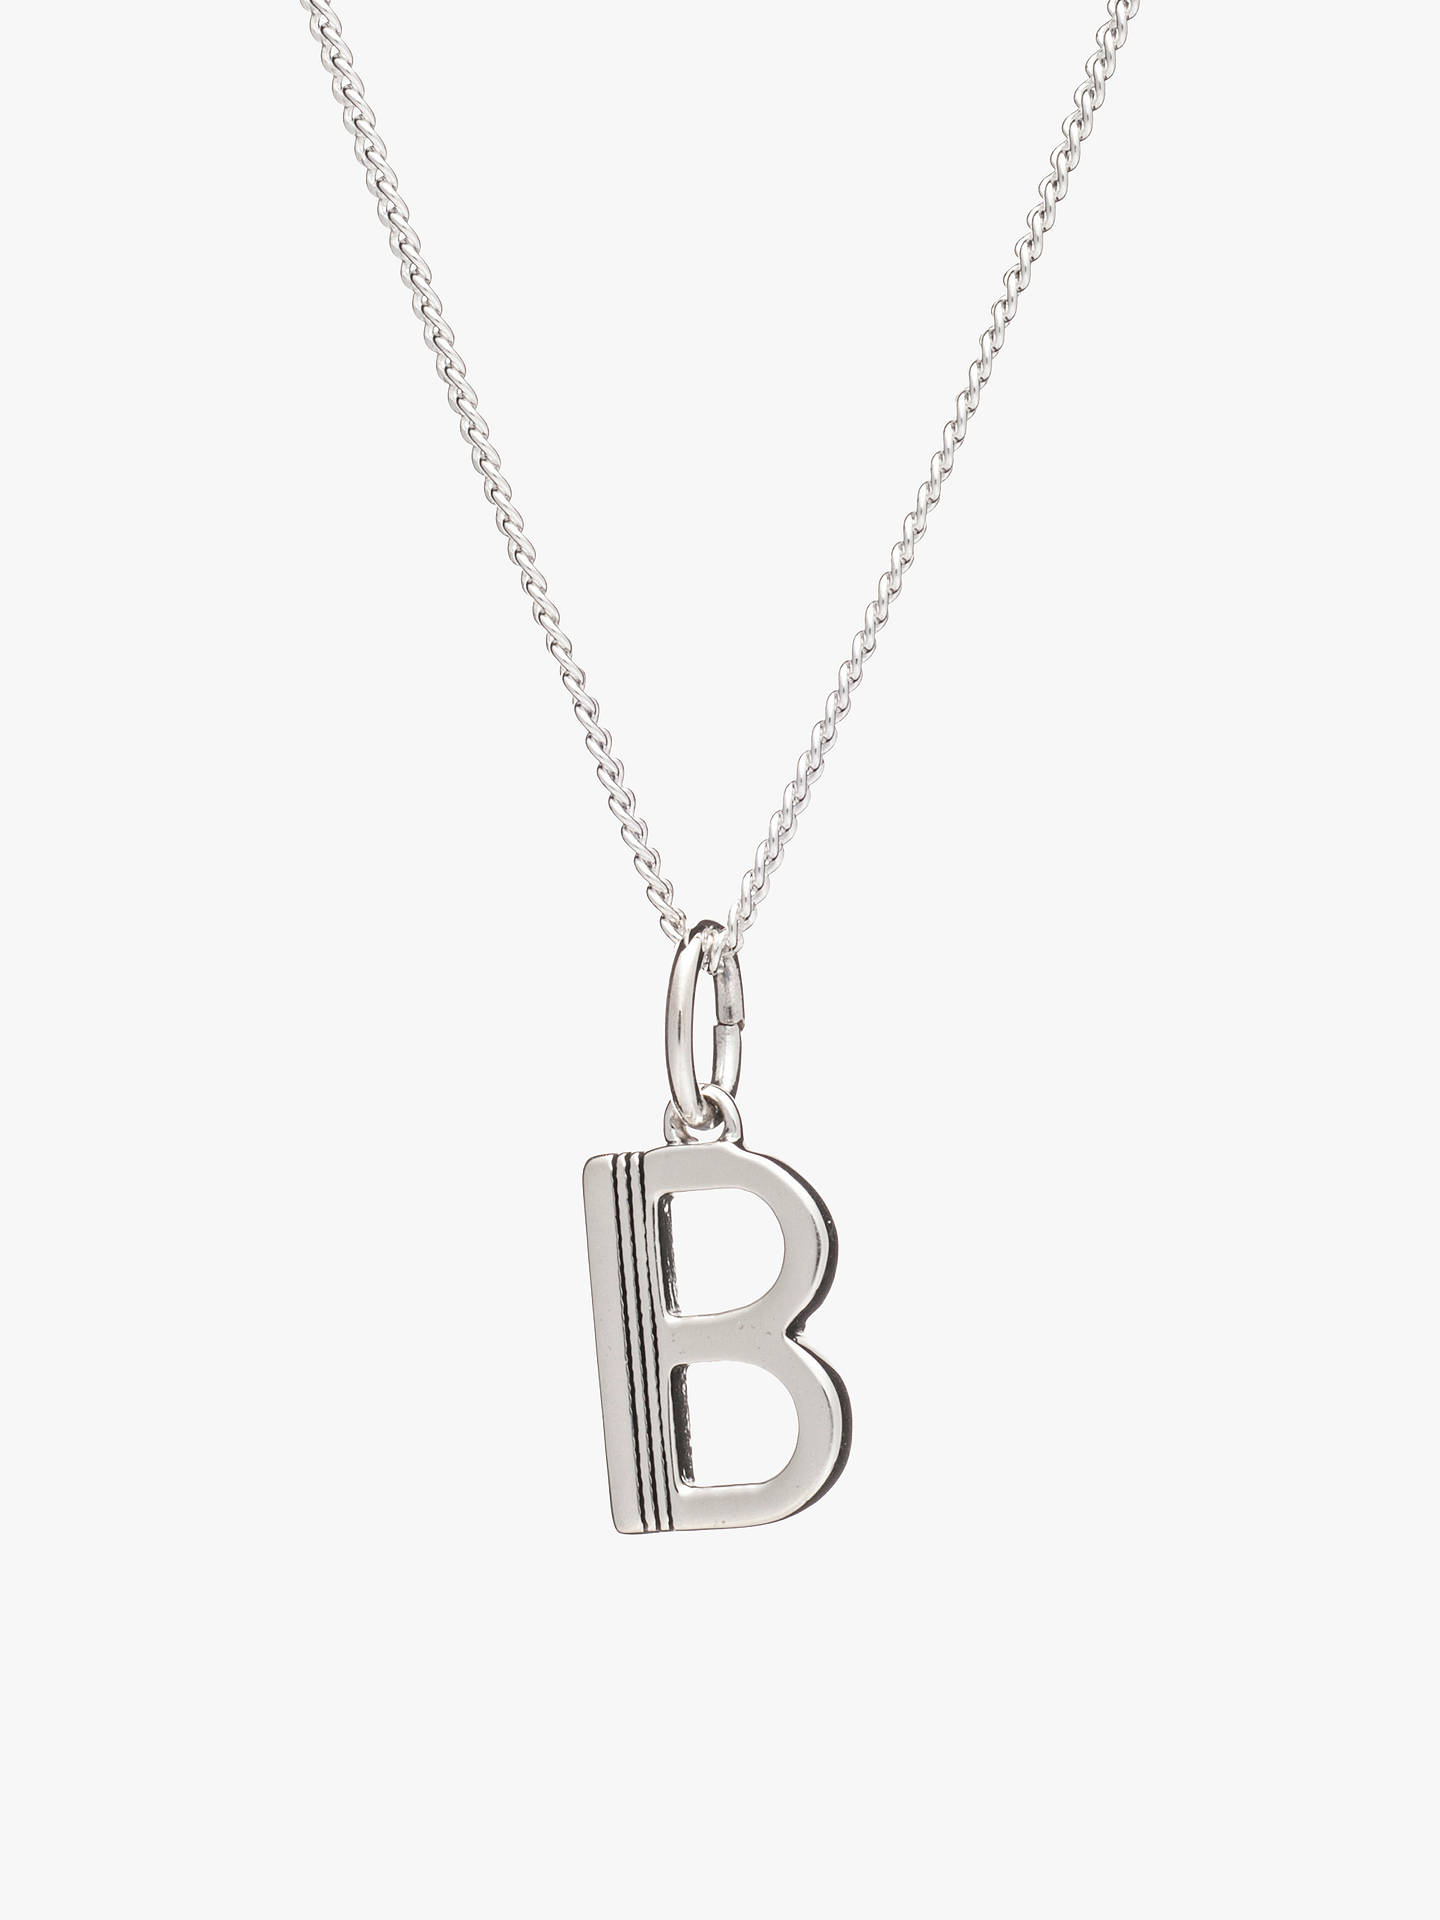 Buy Rachel Jackson London Sterling Silver Initial Pendant Necklace, B Online at johnlewis.com